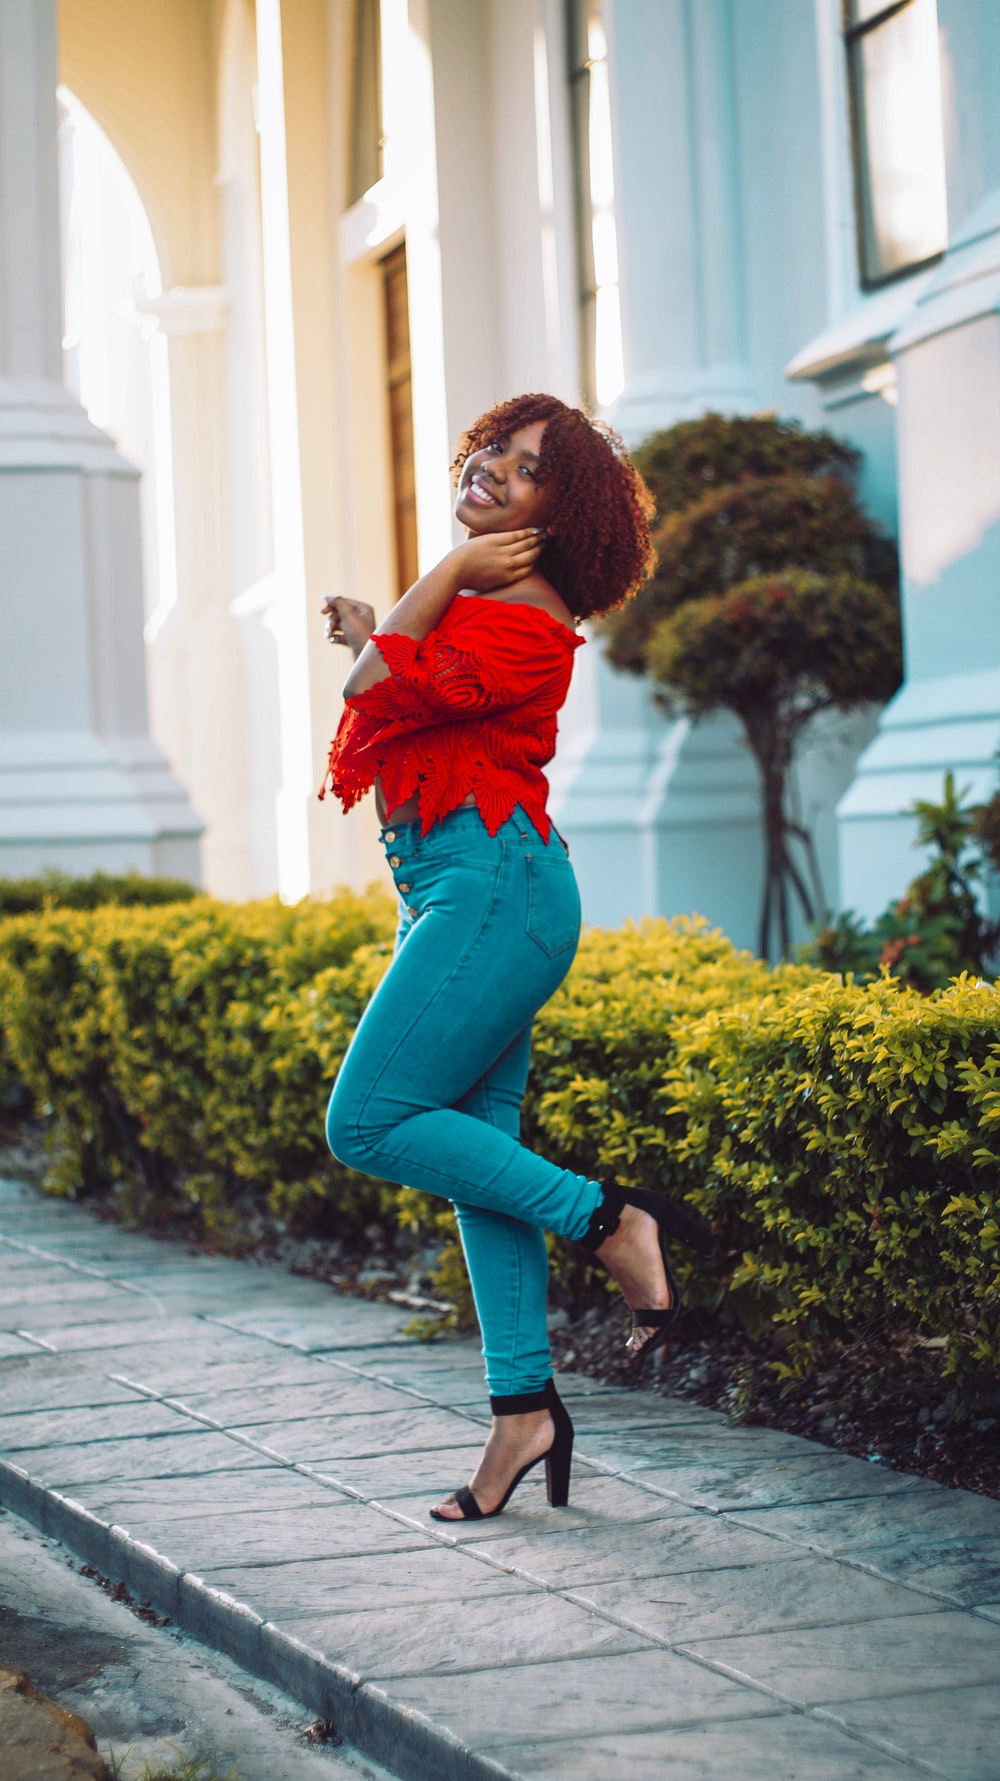 woman in red shirt and blue denim jeans standing on pathway